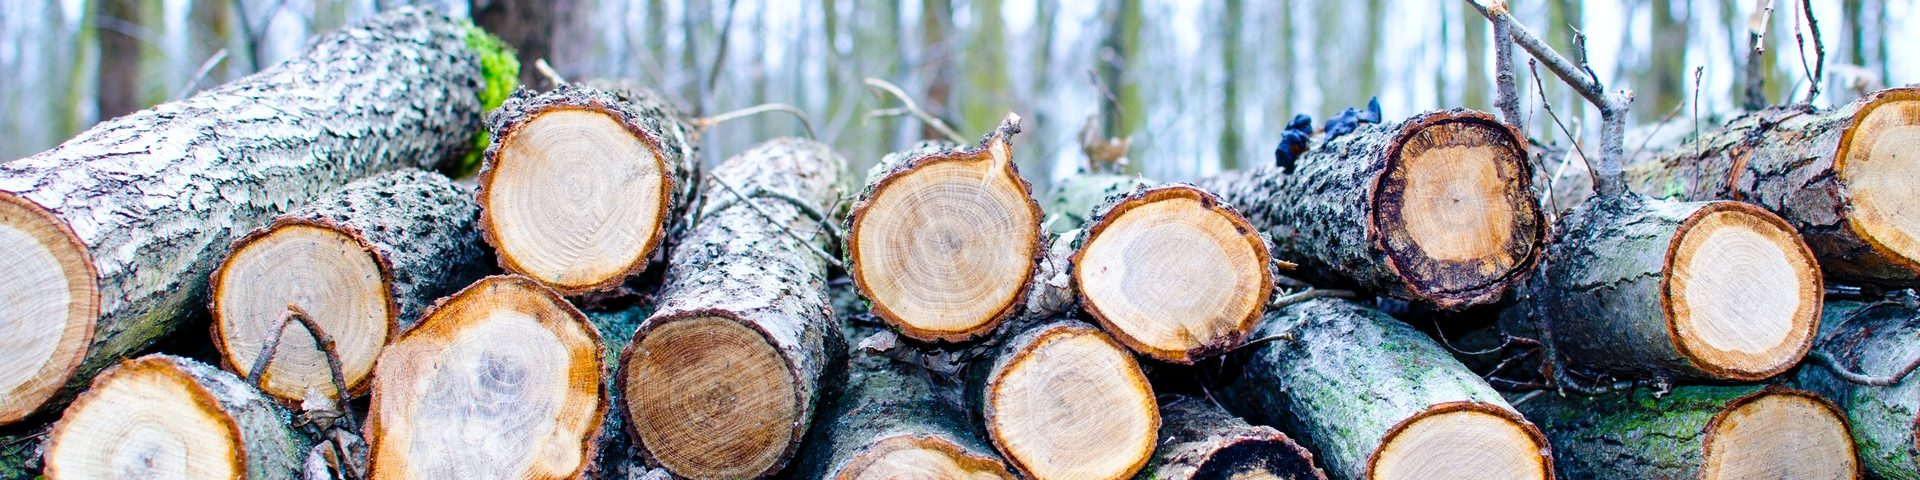 6 Important Reasons to Have Trees Professionally Cut Down